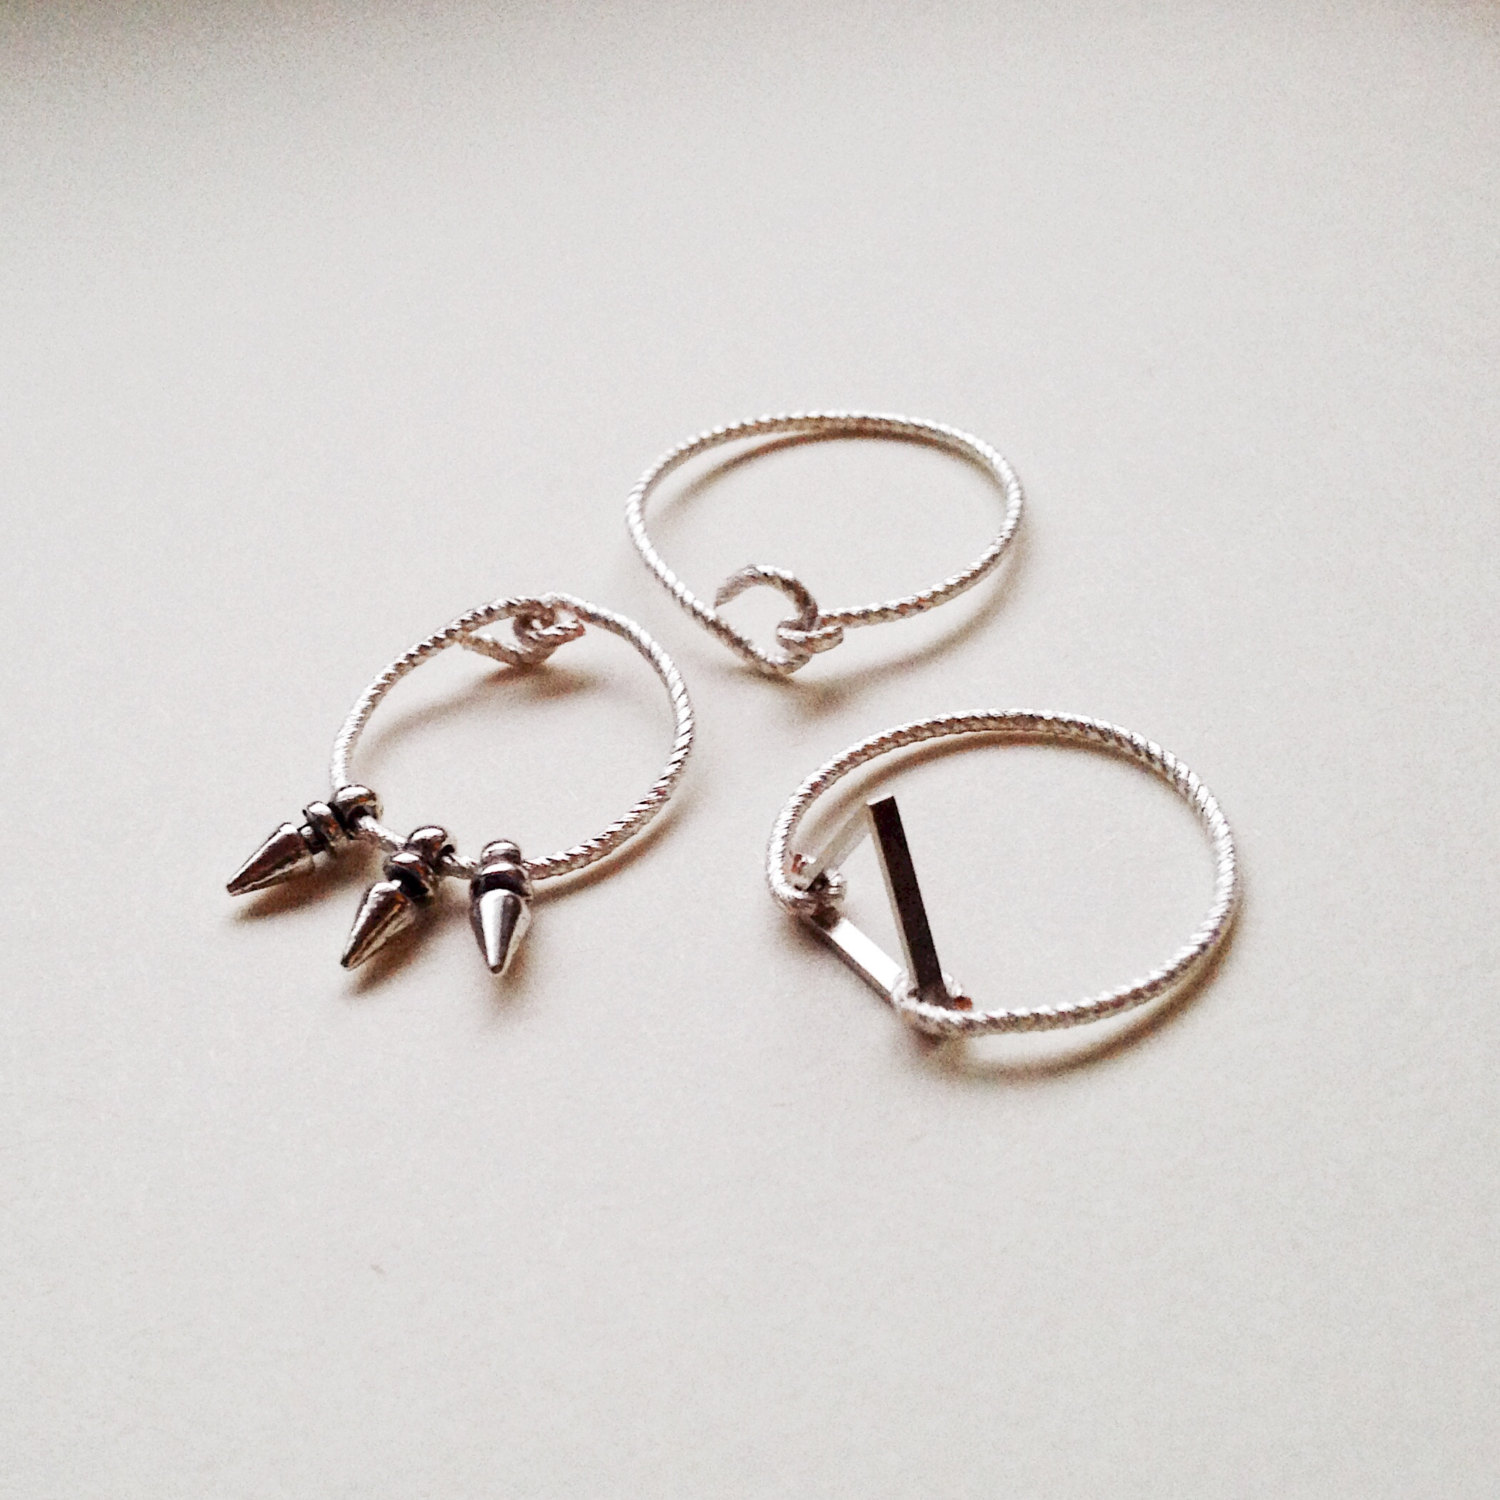 Ring -Triangle Ring, Wire Ring, Tribal Jewelry, Edgy Ring, Spike ...